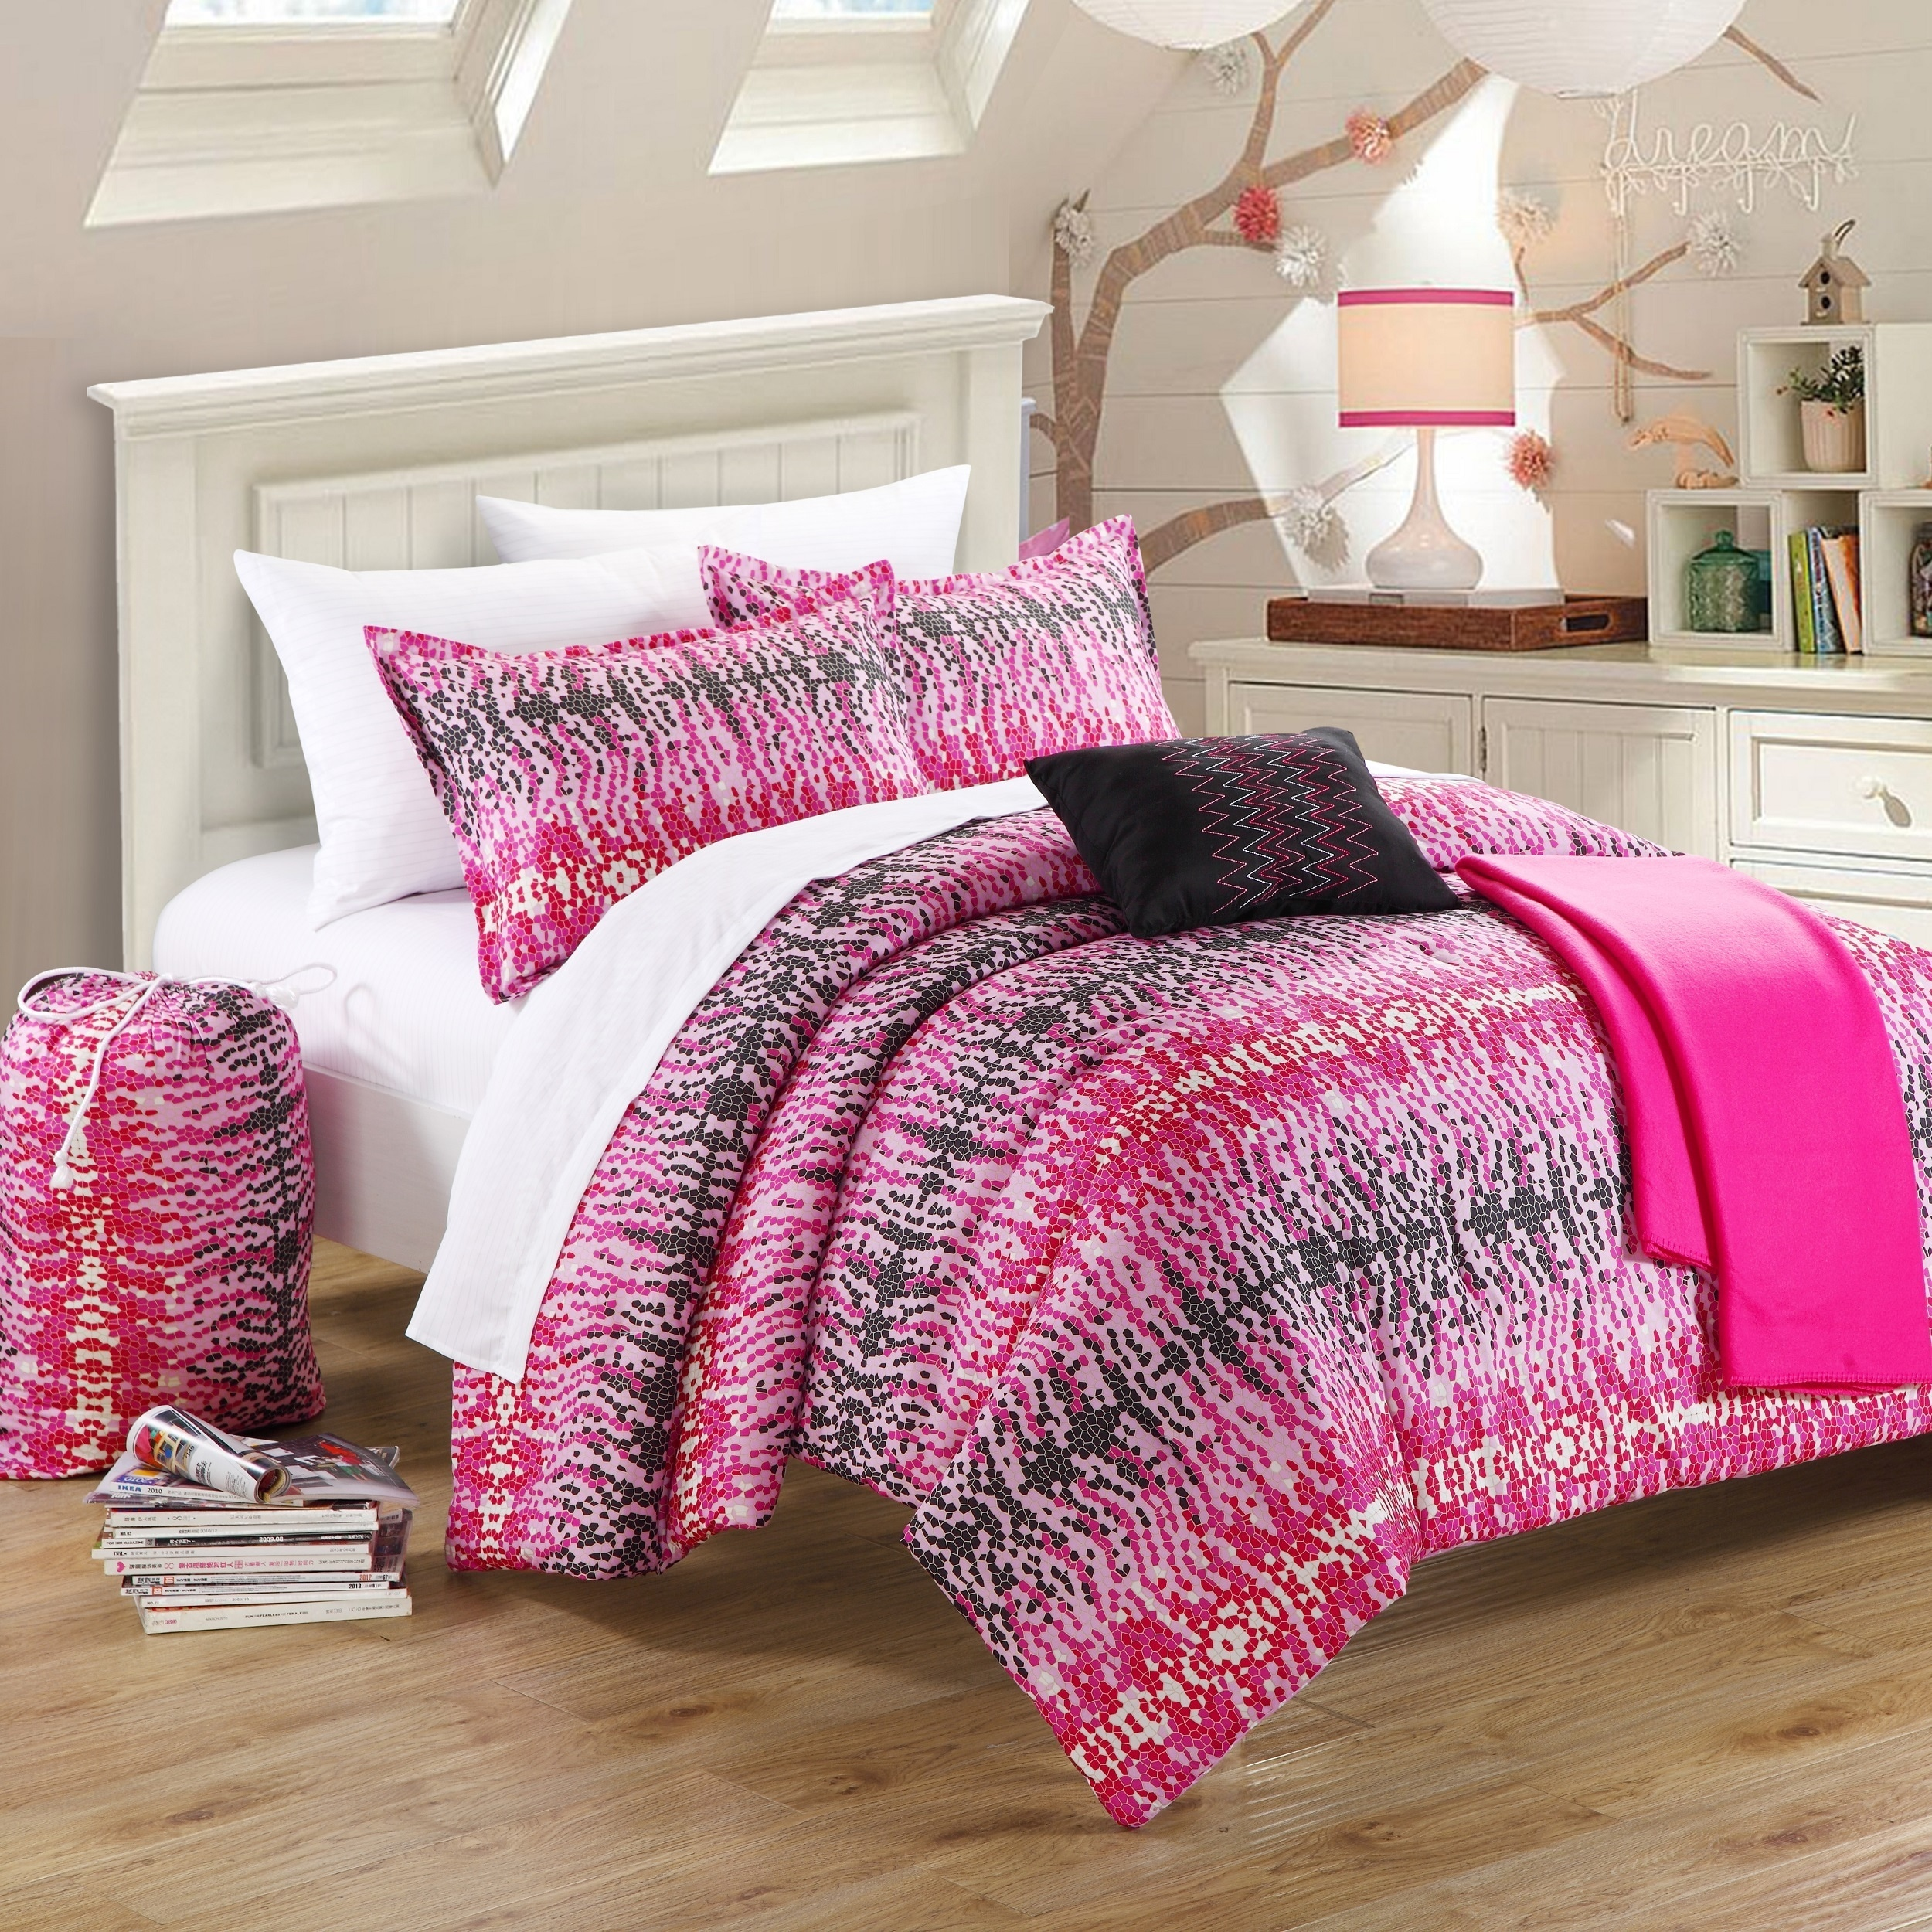 setting doll free about twin color girls bedroom mafa best girl decor decorating girly toy kissing online decoration set schemes alluring house ideas on design cute for games hot interior wedding scheme nice room barbie dream